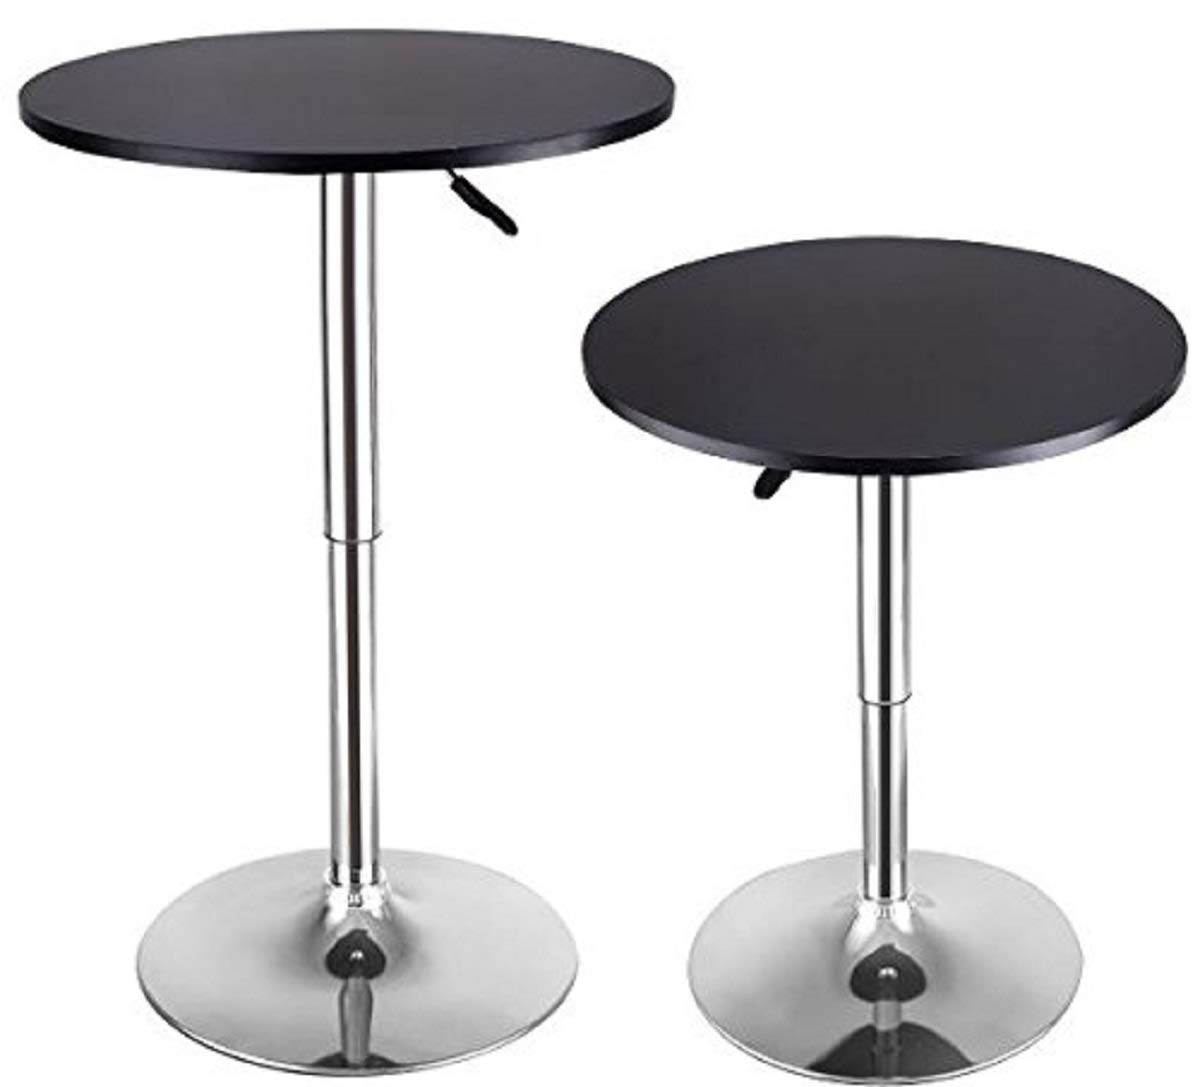 2 Pcs Height Adjustable Round Bar Tables Bistro Pub Counter Swivel Cafe  Tables BeUniqueToday